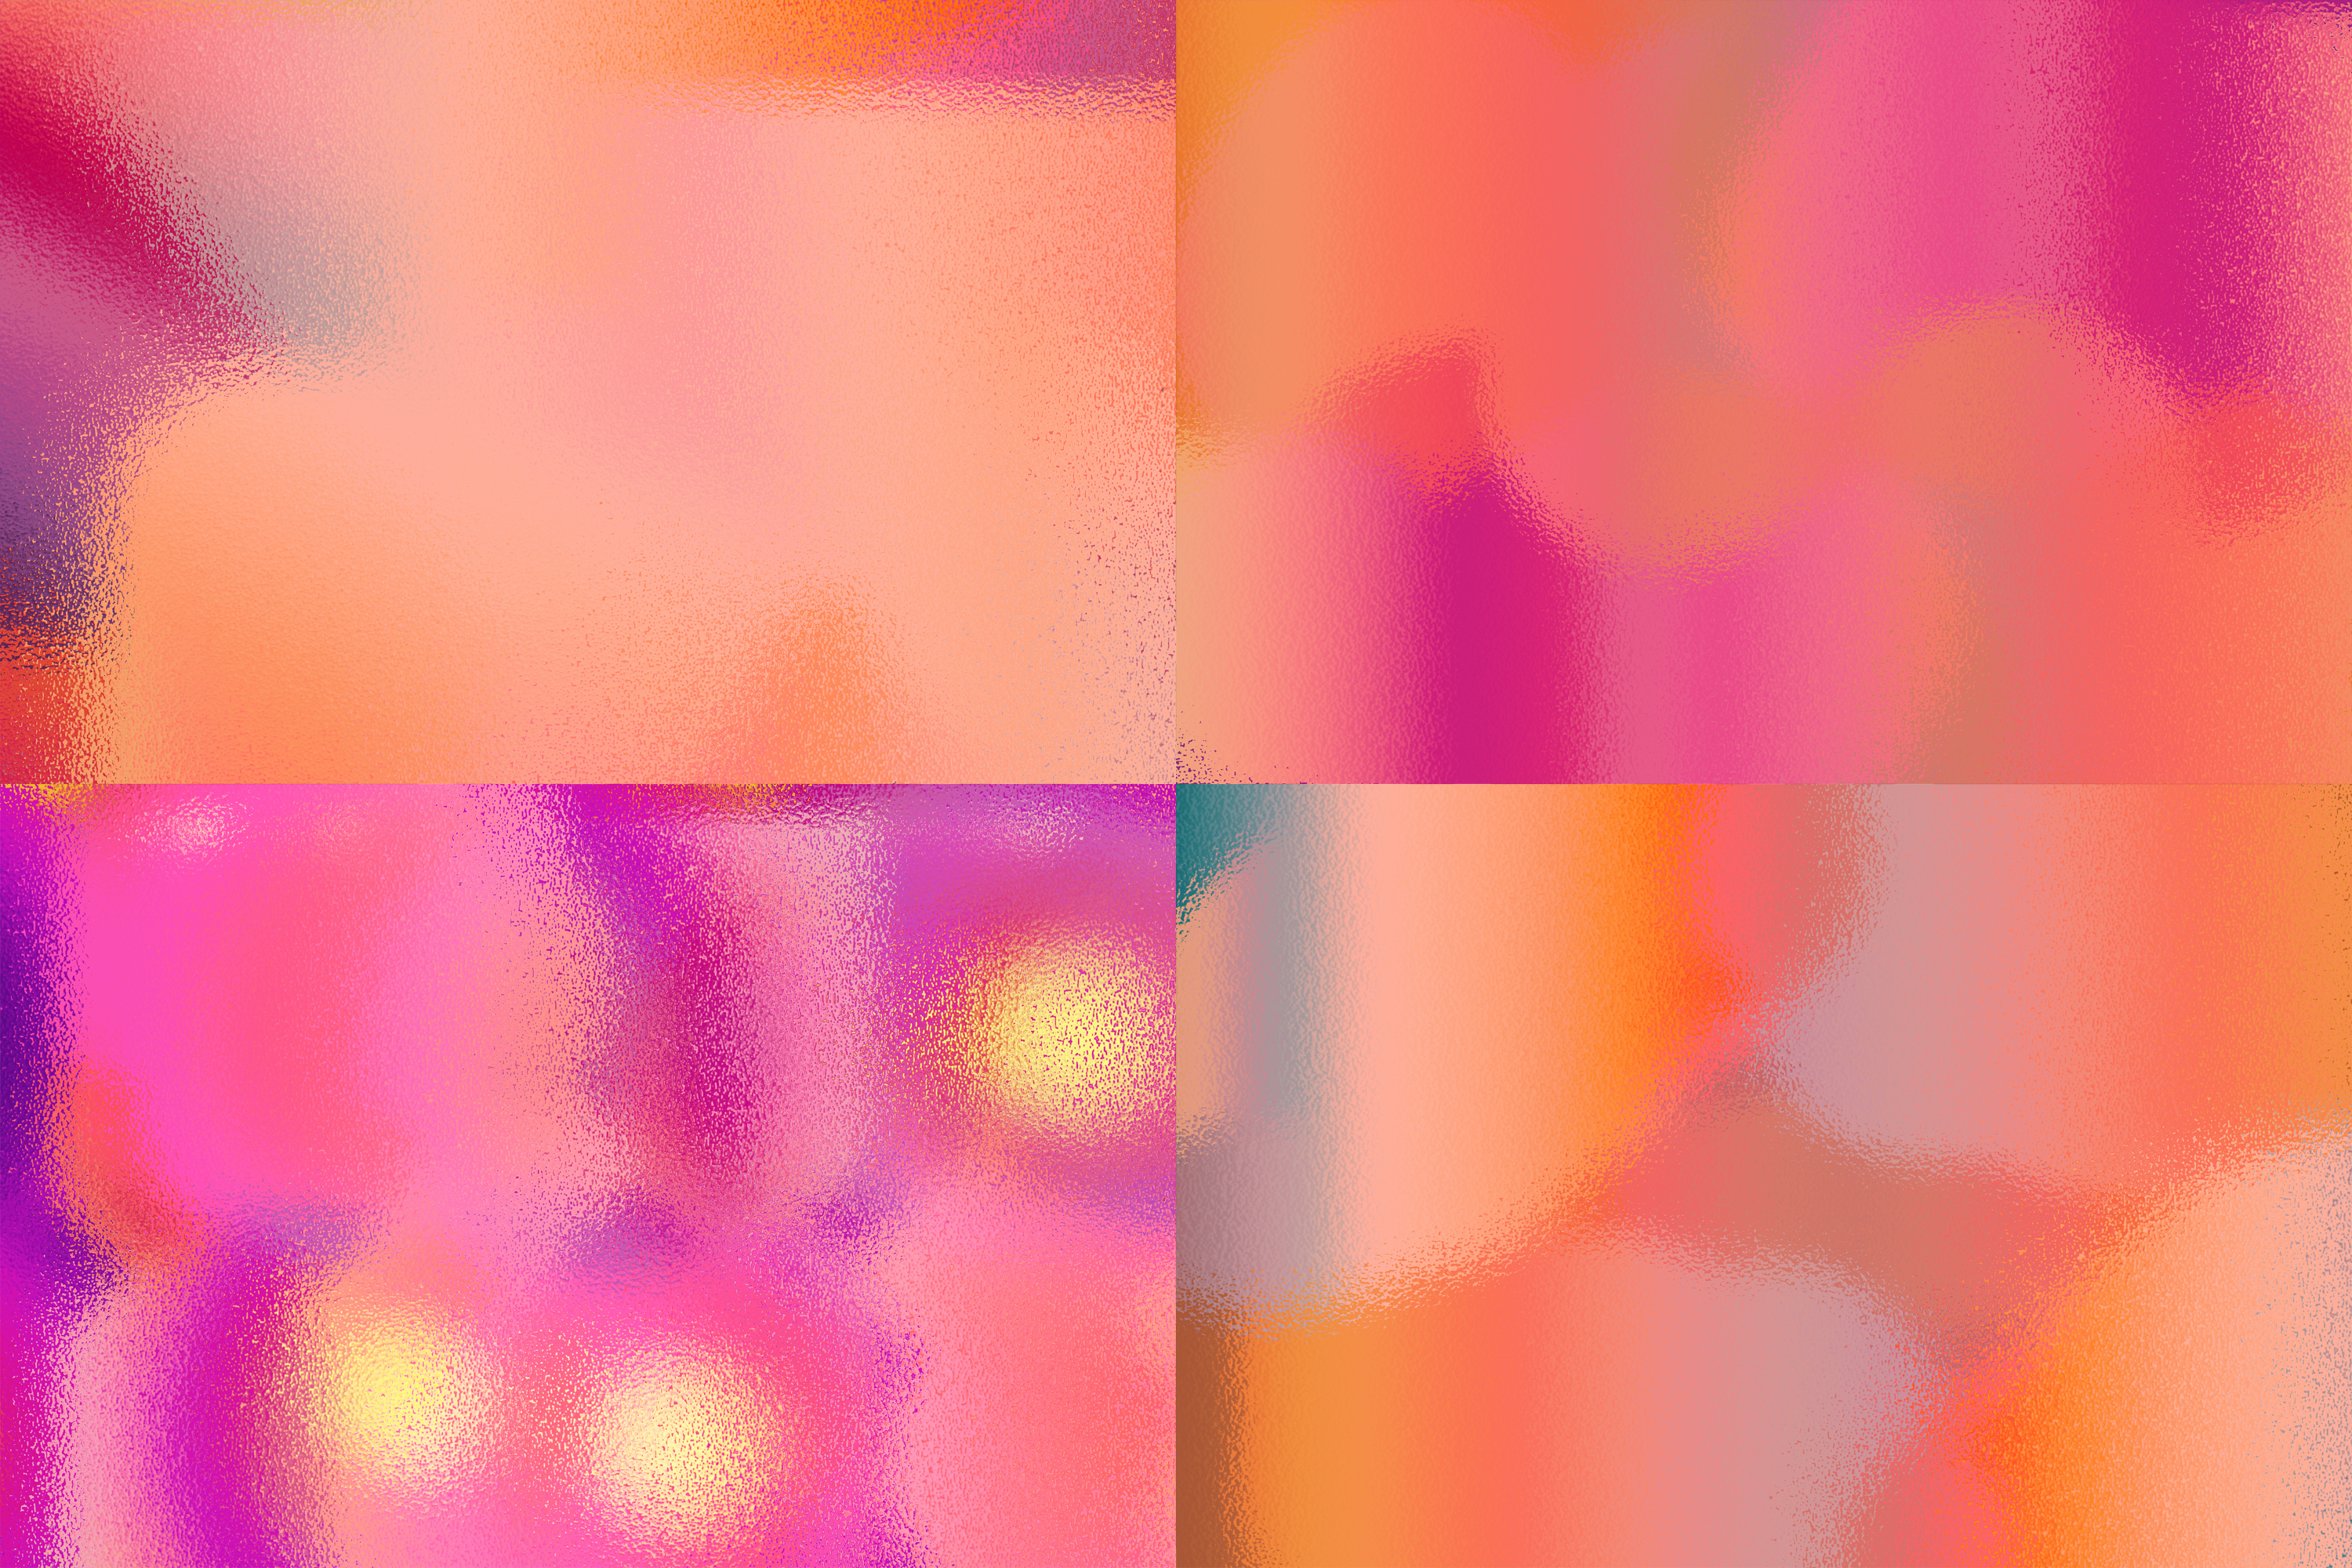 Holographic - 15 Backgrounds Pack example image 7